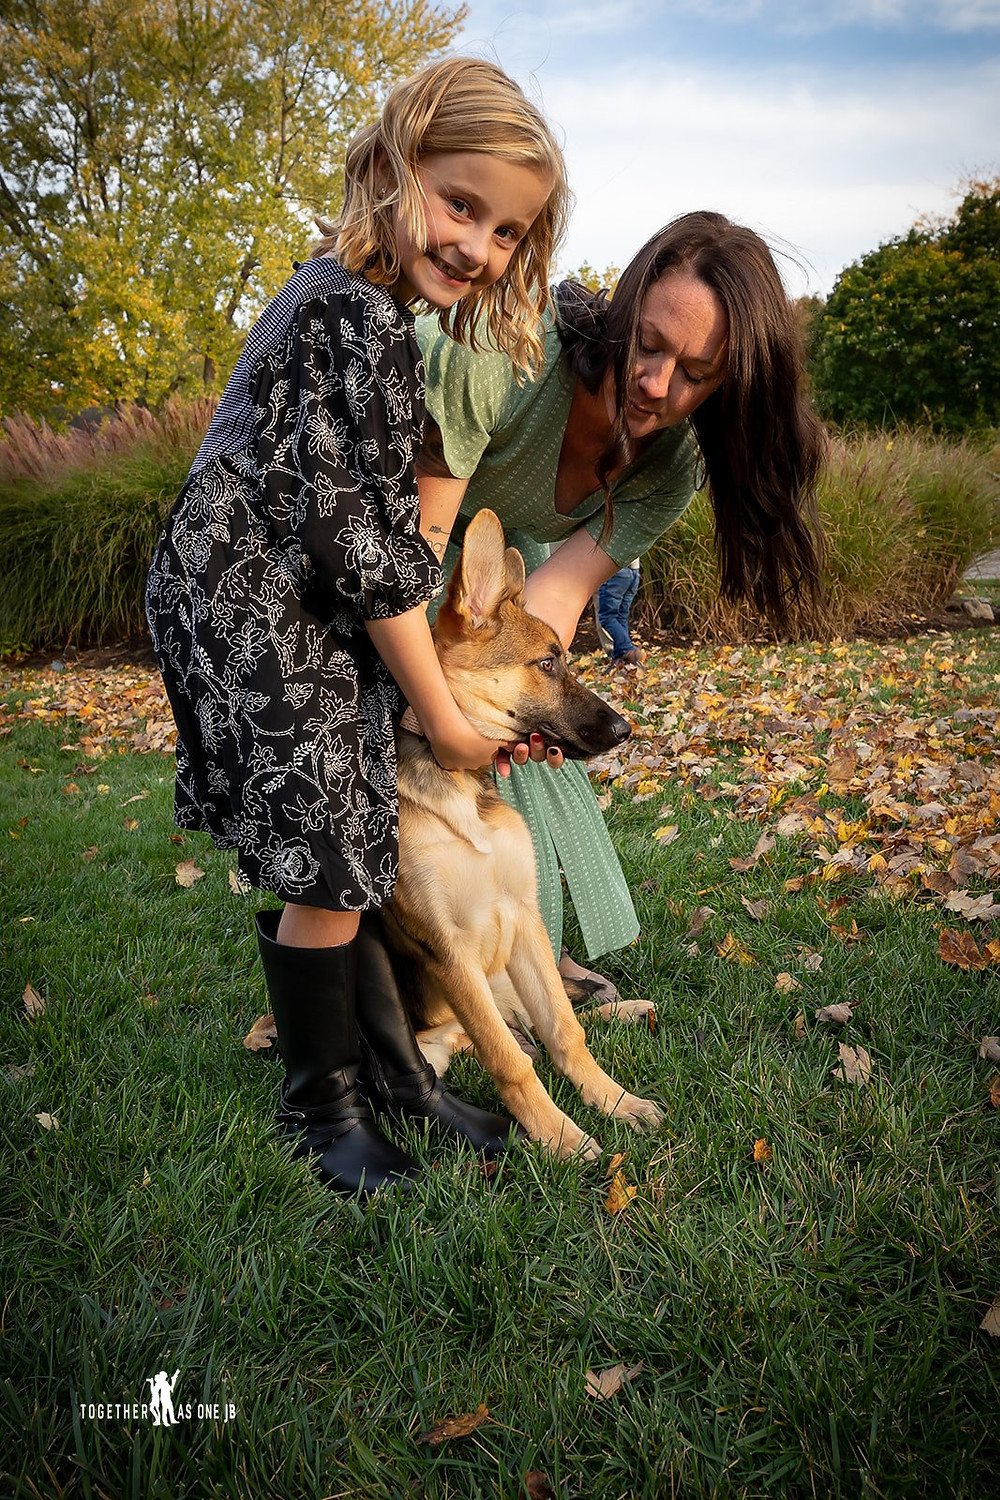 Cincinnati family photographer captures photography of family playing with dog in yard.